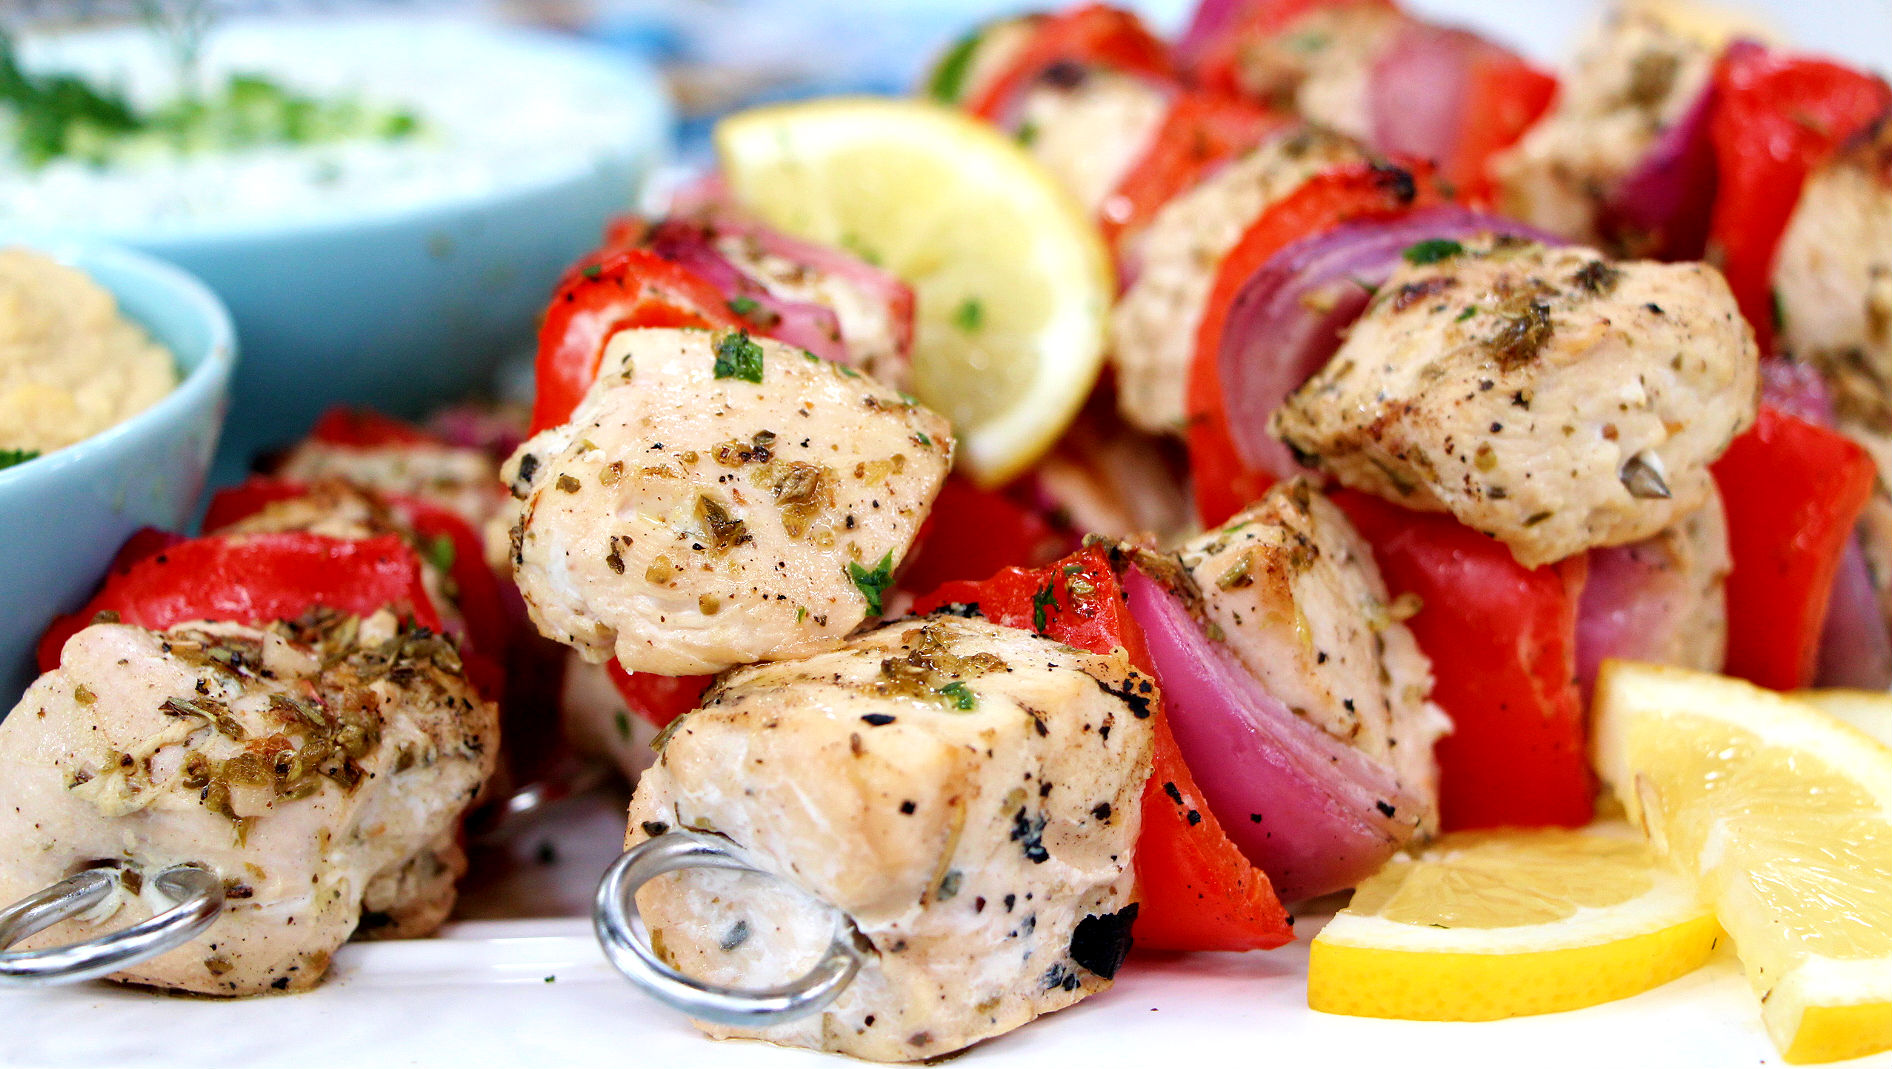 Grilled chicken souvlaki with tzatziki dipping sauce